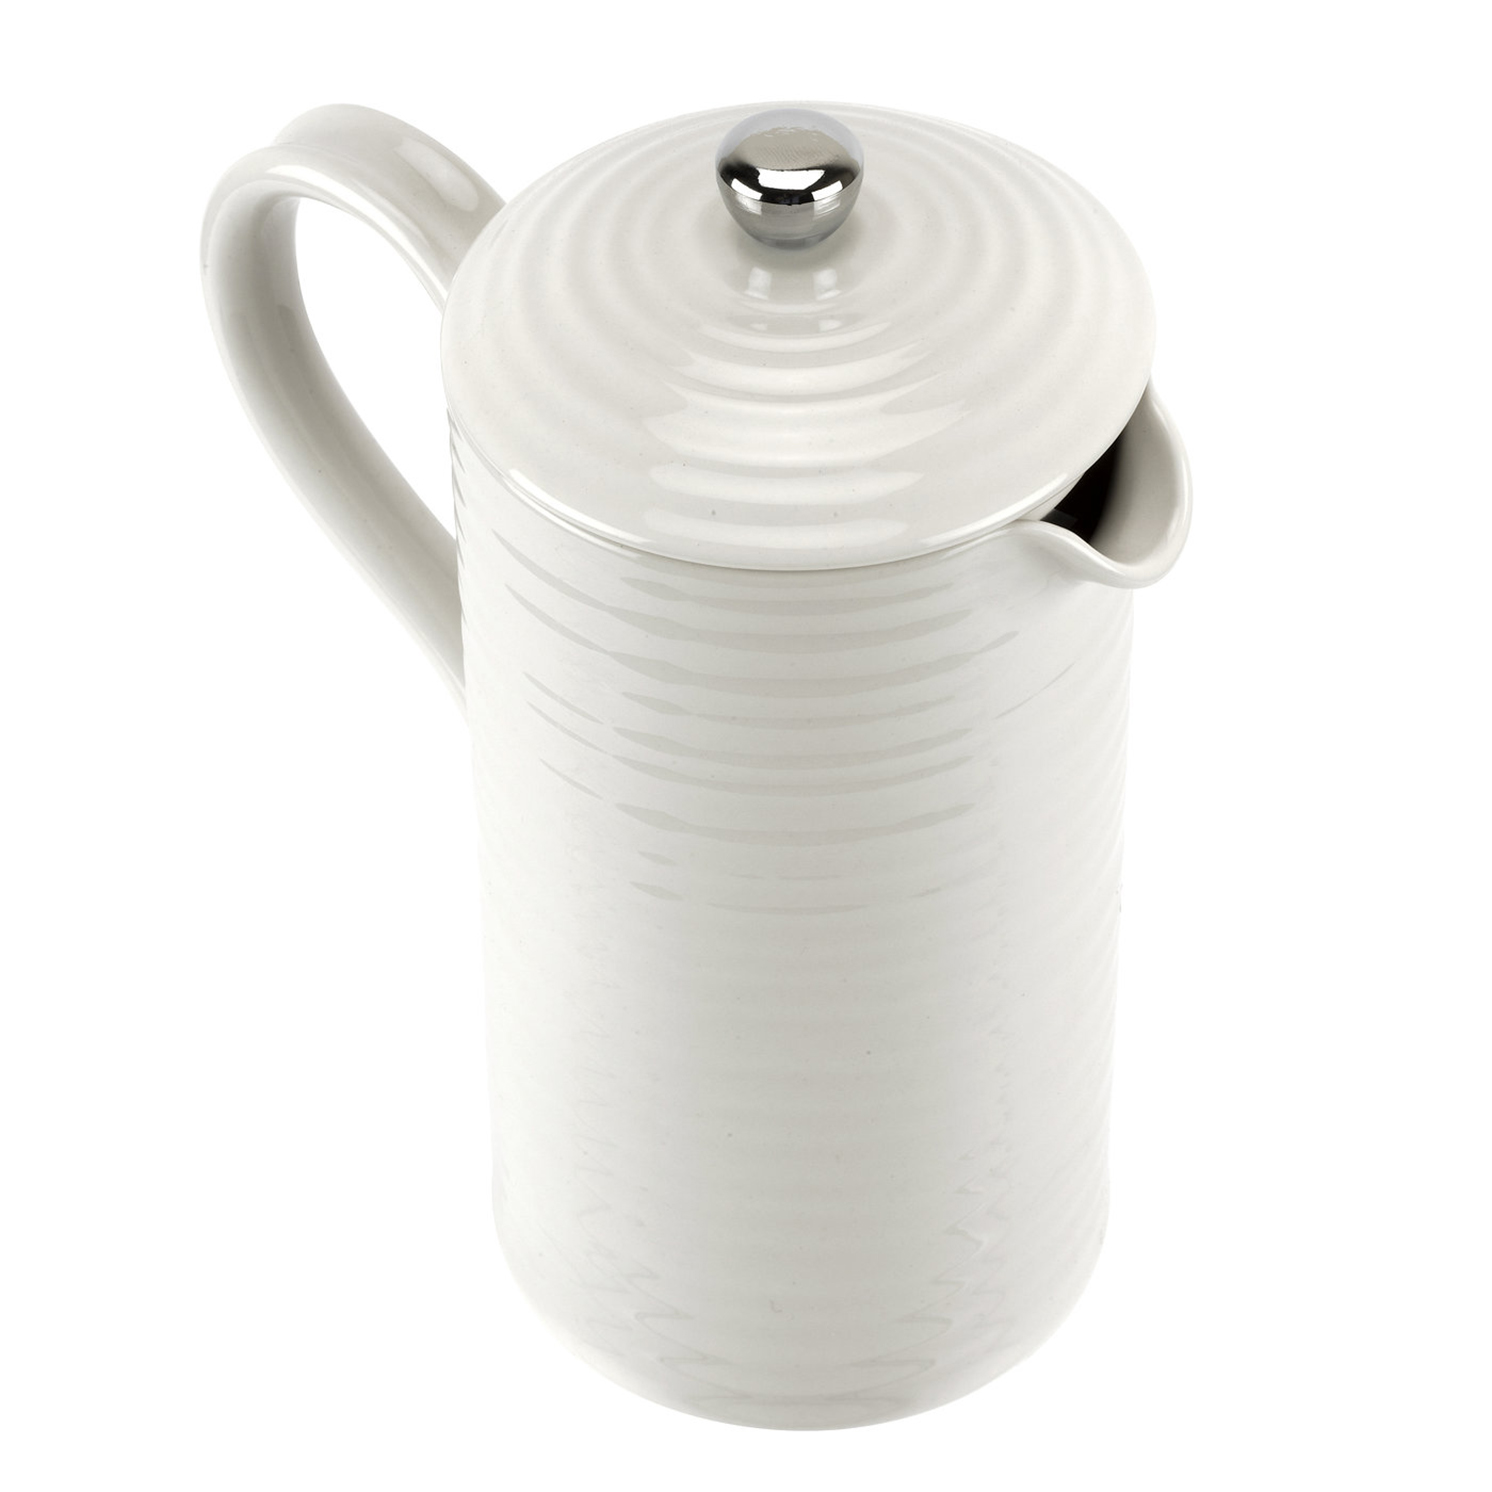 Sophie Conran for Portmeirion – White Porcelain Cafetiere in Gift Box